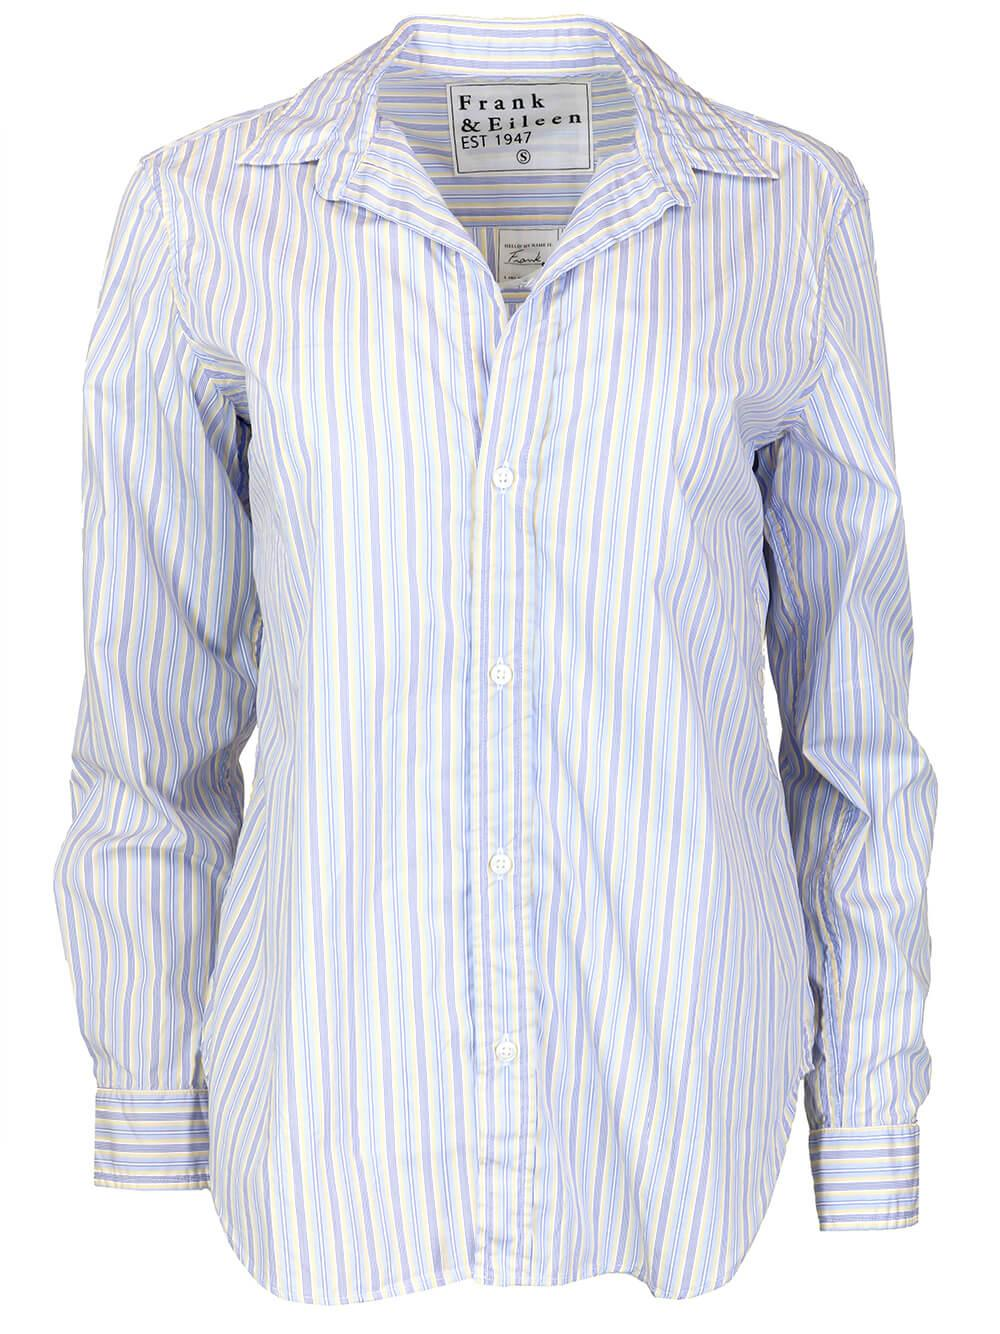 Frank Striped Button Up